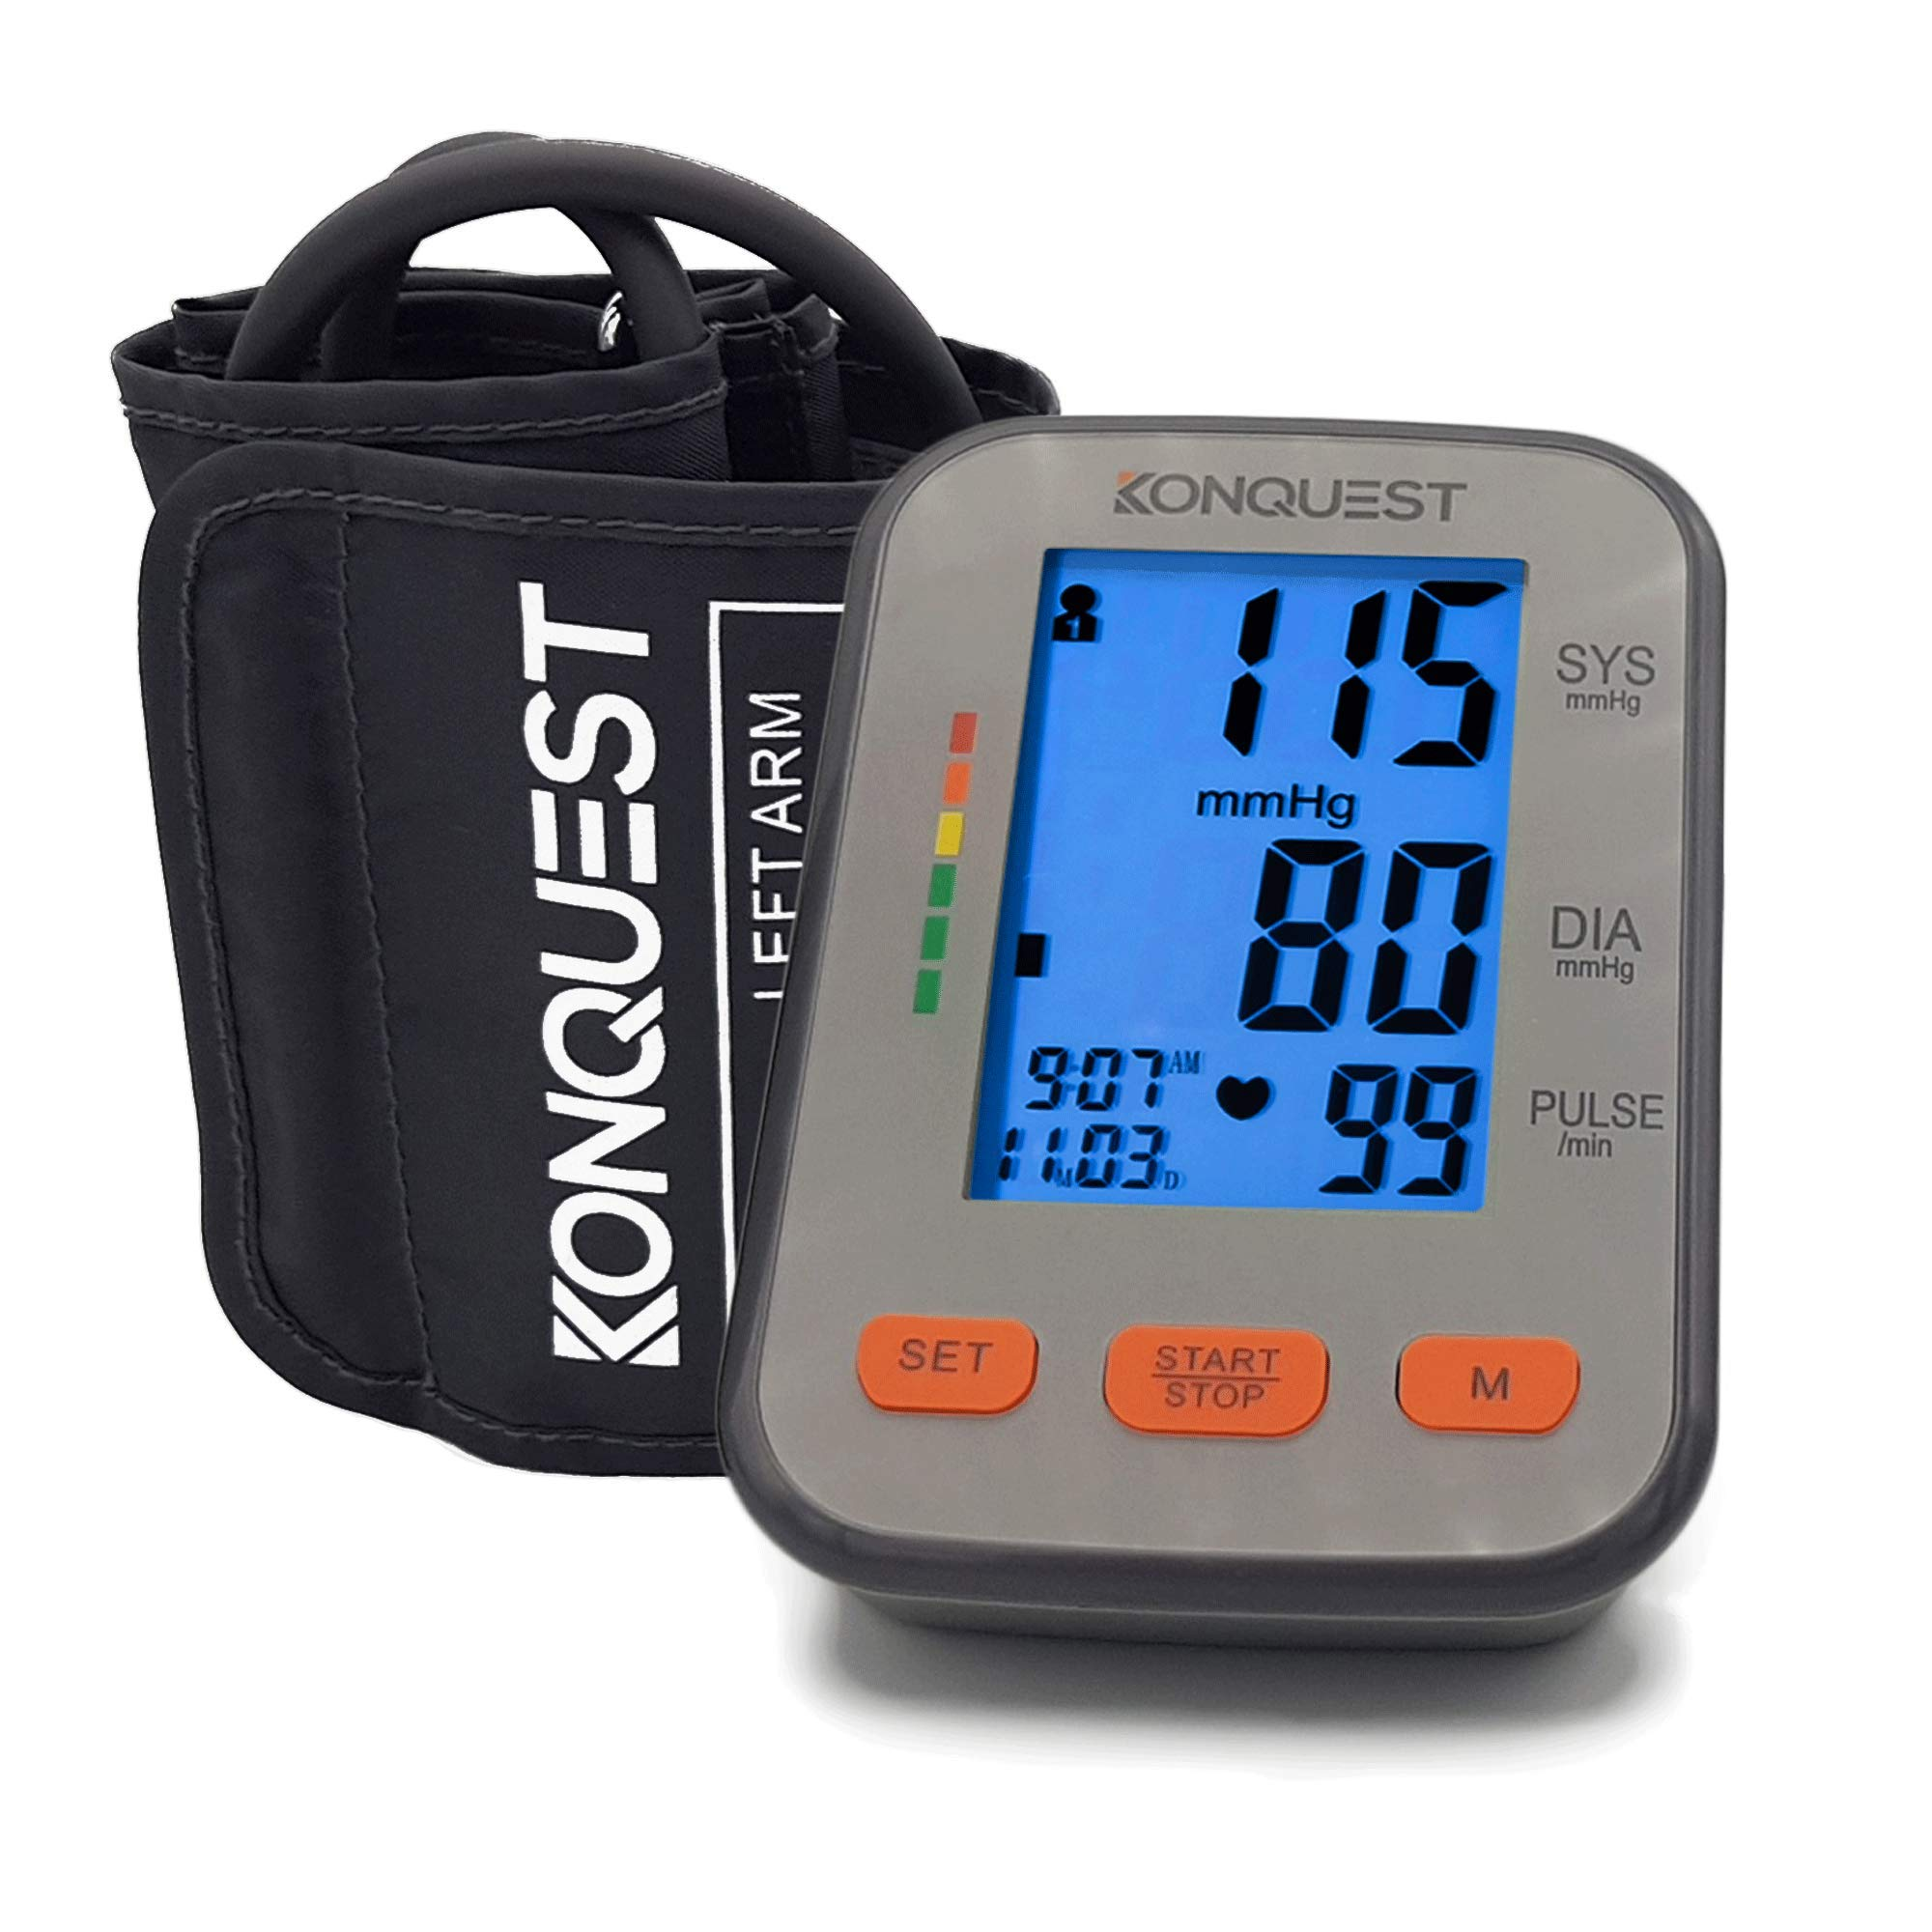 KONQUEST KBP-2704A Automatic Upper Arm Blood Pressure Monitor - Accurate, FDA Approved - Adjustable Cuff, Large Backlit Display - Irregular Heartbeat & Hypertension Detector - Tensiometro Digital by KONQUEST